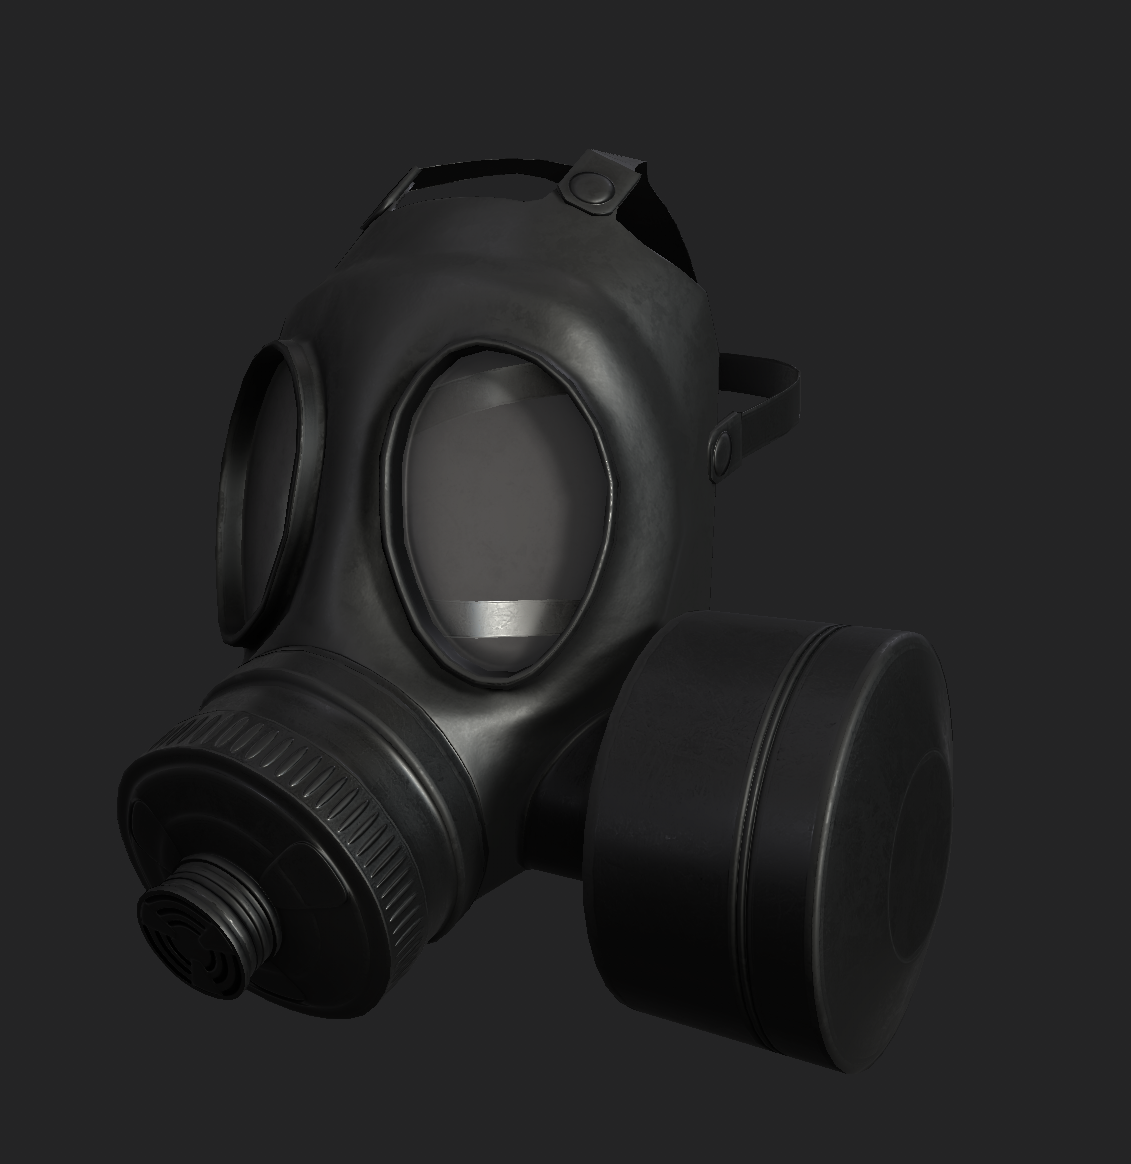 New textures for the gasmask, will be availible for MARSOC in the future.